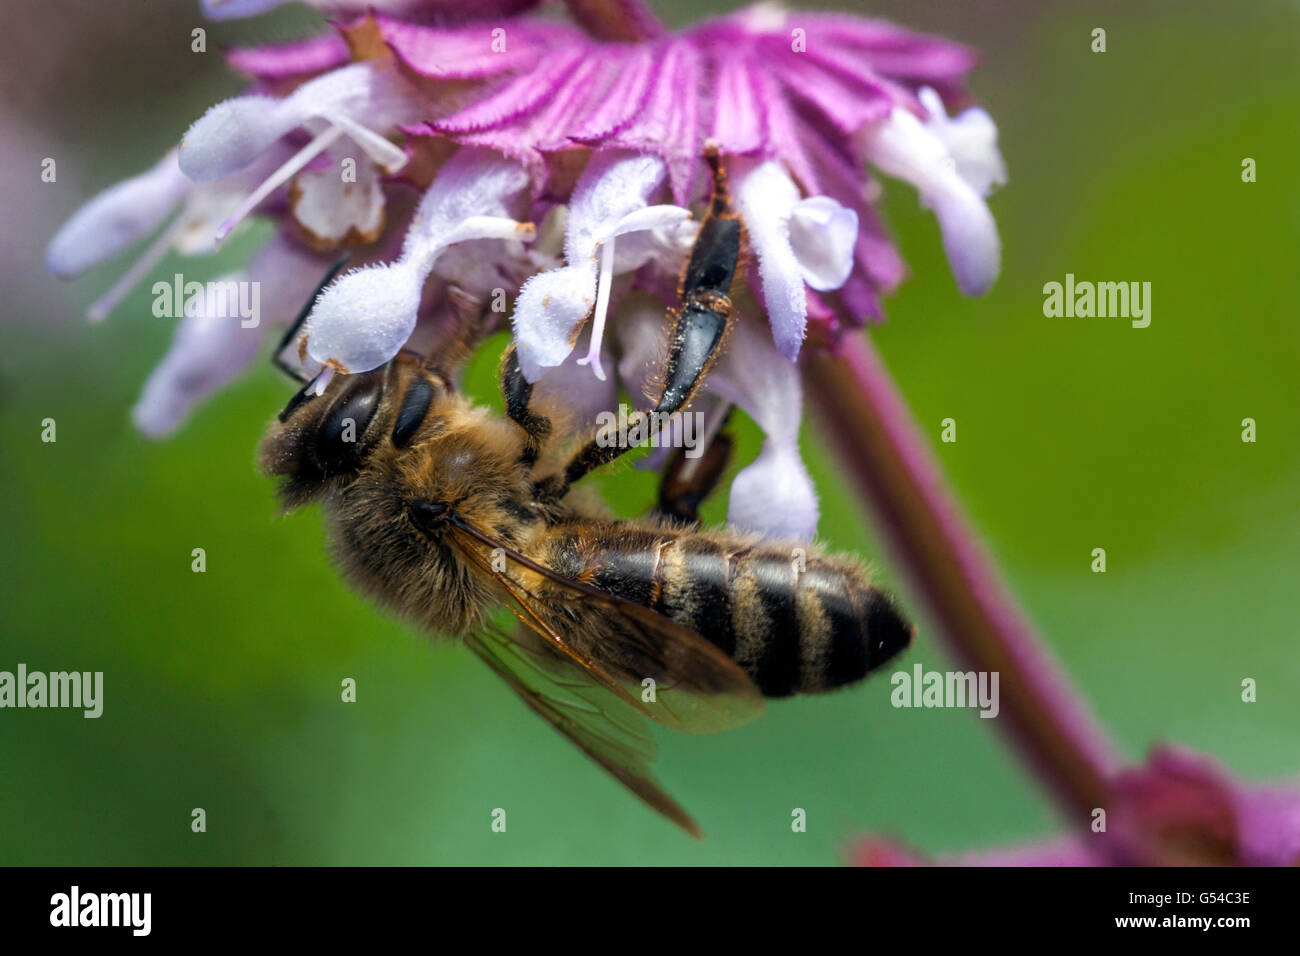 Bee on Salvia napifolia close up flower - Stock Image